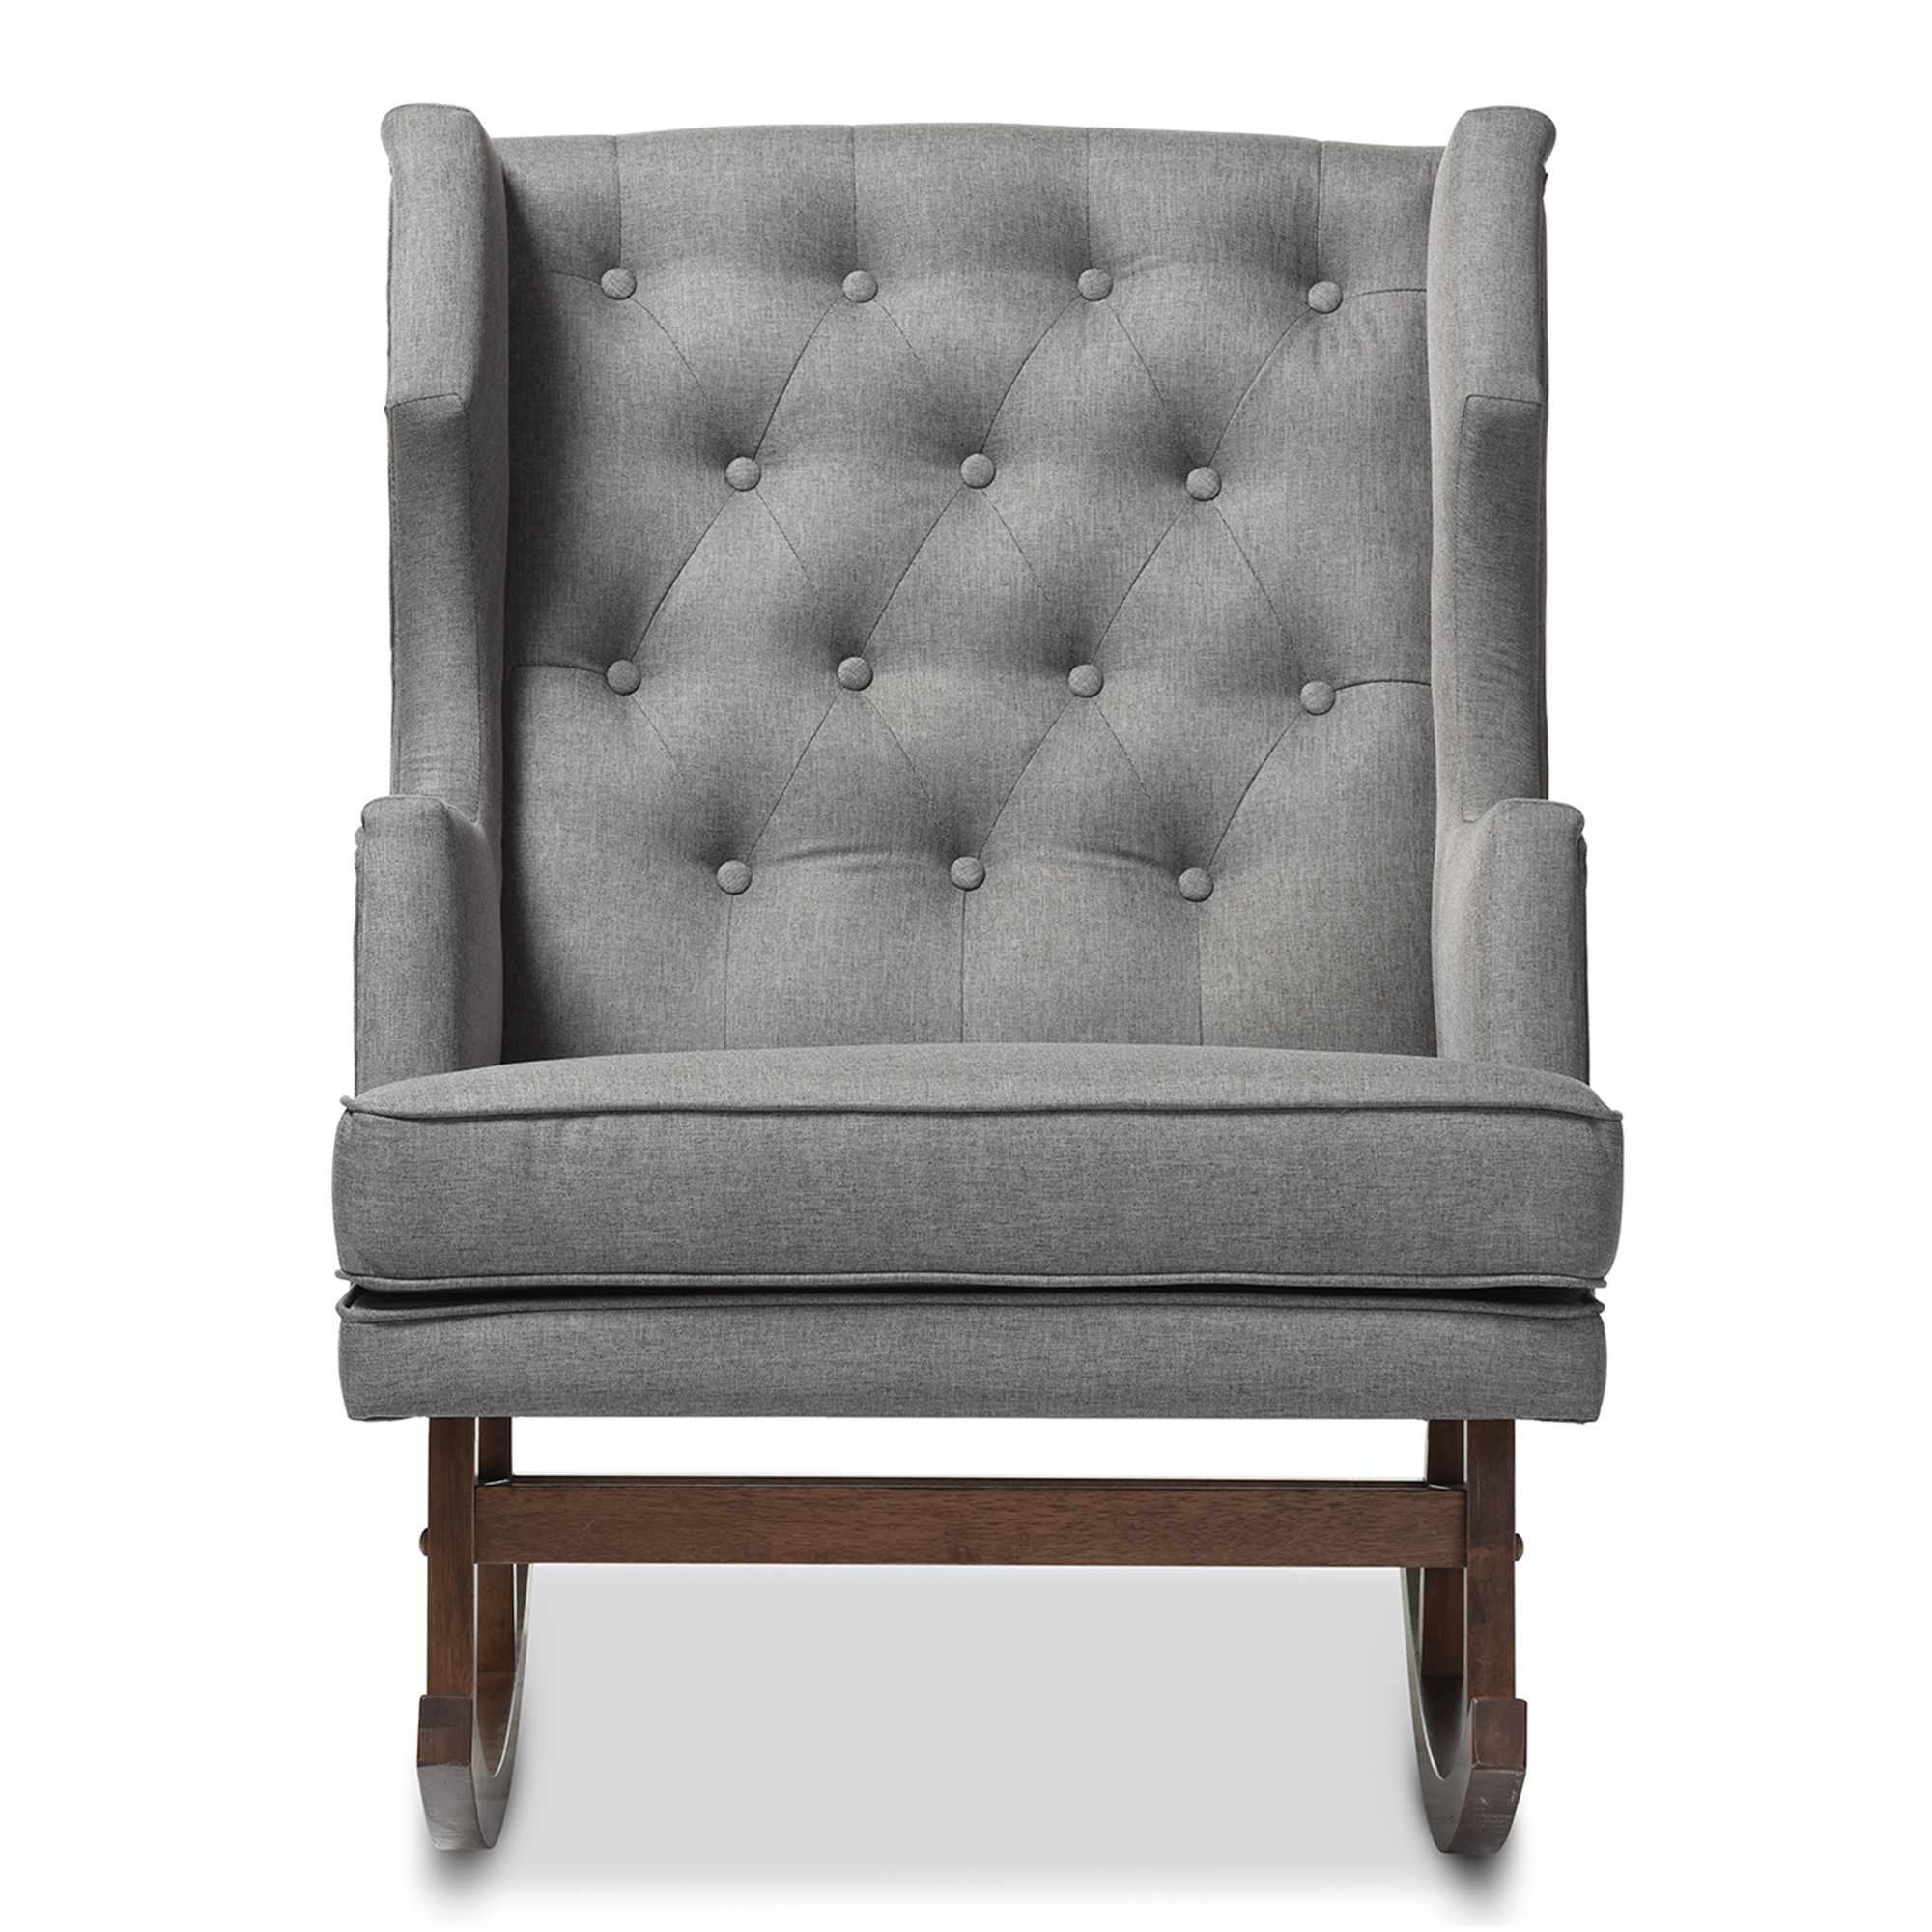 Baxton Studio Iona Mid Century Retro Modern Grey Fabric Upholstered  Button Tufted Wingback Rocking Chair